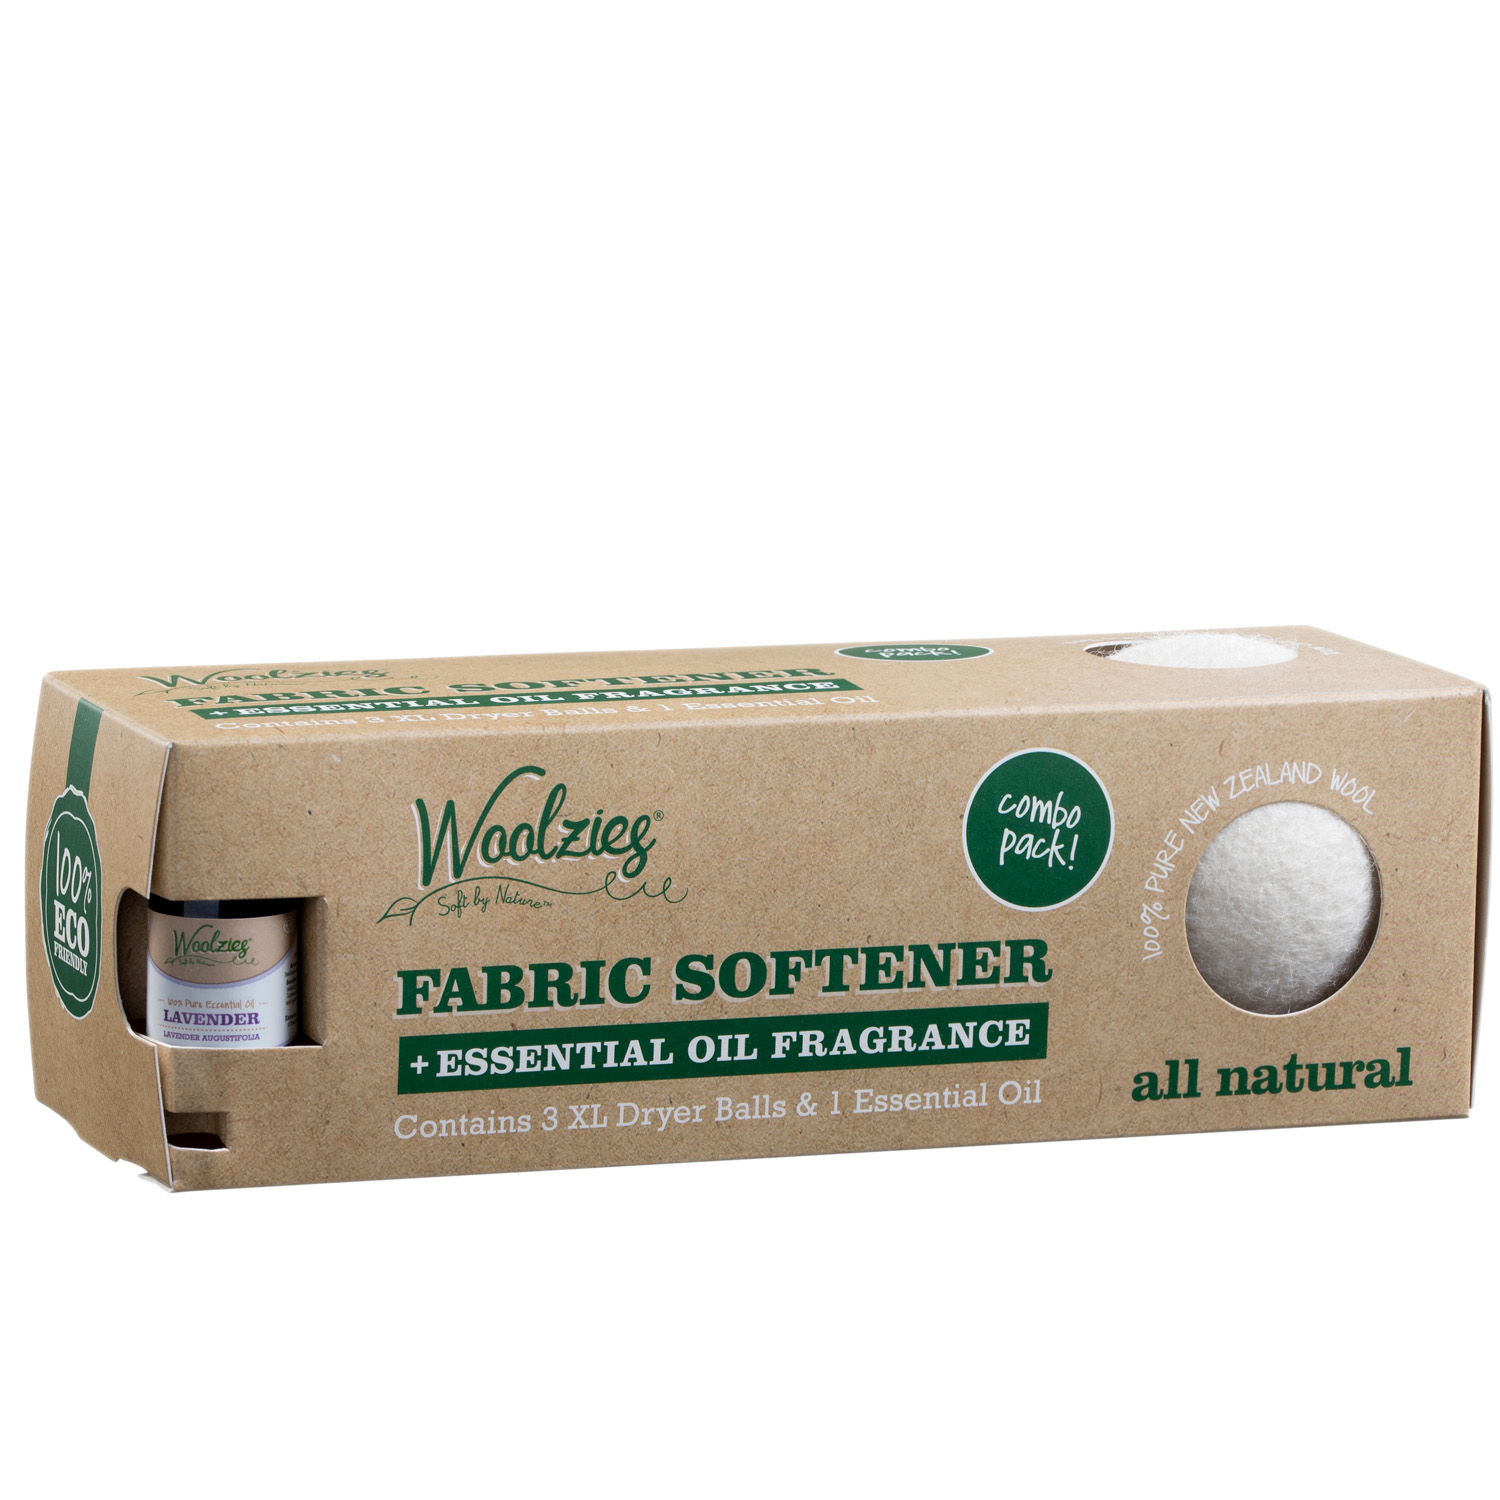 Woolzies wool dryer balls set of 3 & Lavender essential oil -Combo Pack